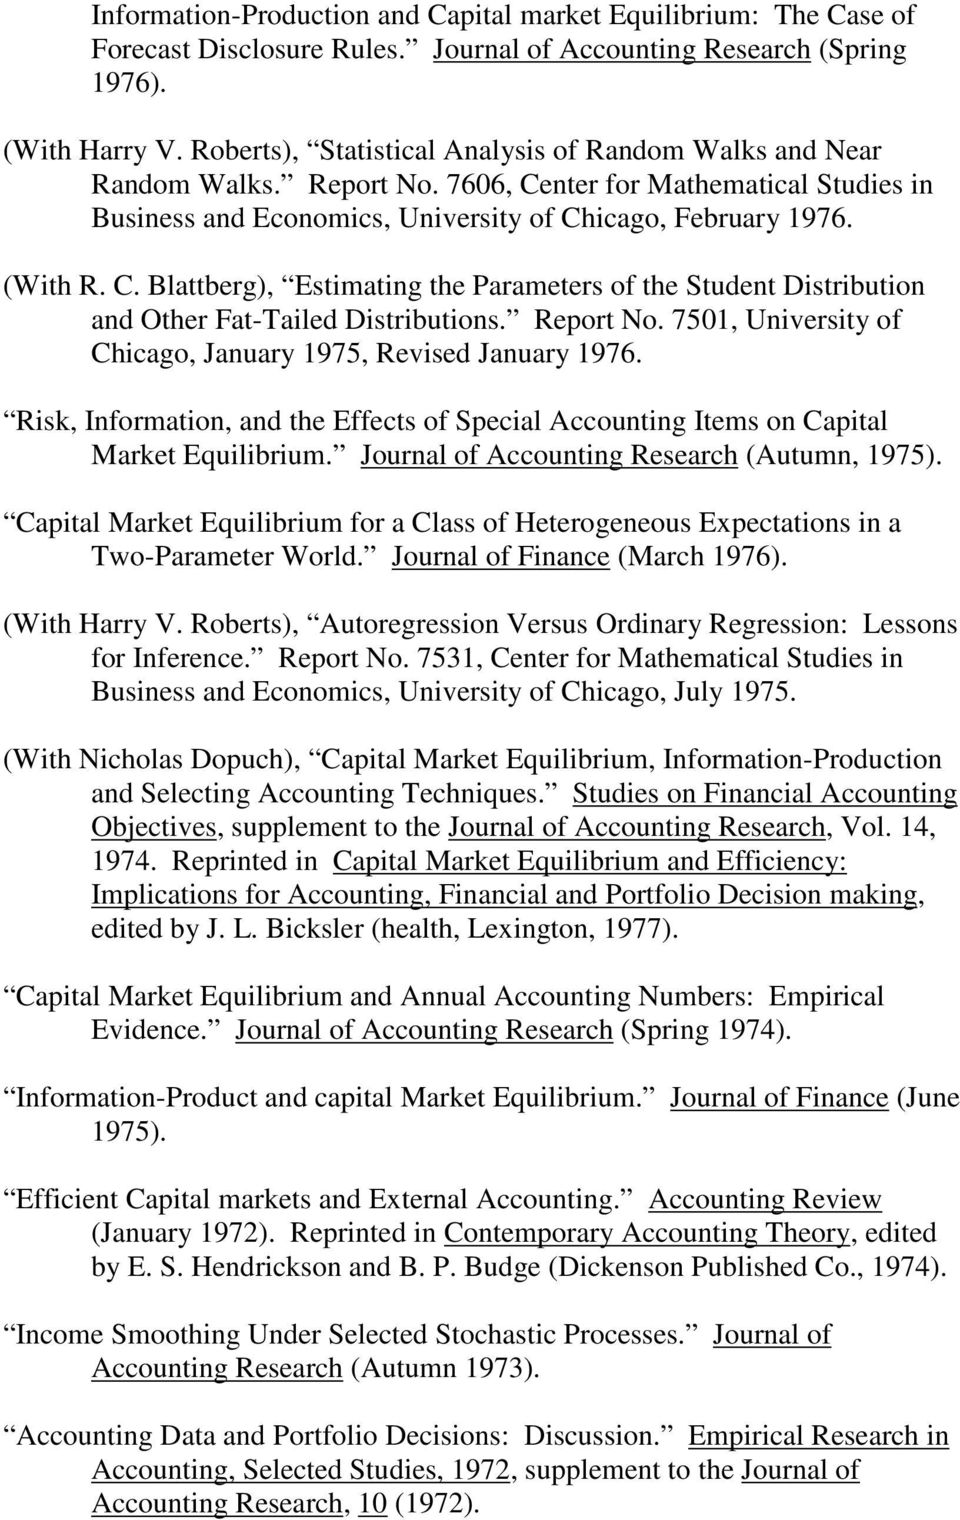 Report No. 7501, University of Chicago, January 1975, Revised January 1976. Risk, Information, and the Effects of Special Accounting Items on Capital Market Equilibrium.